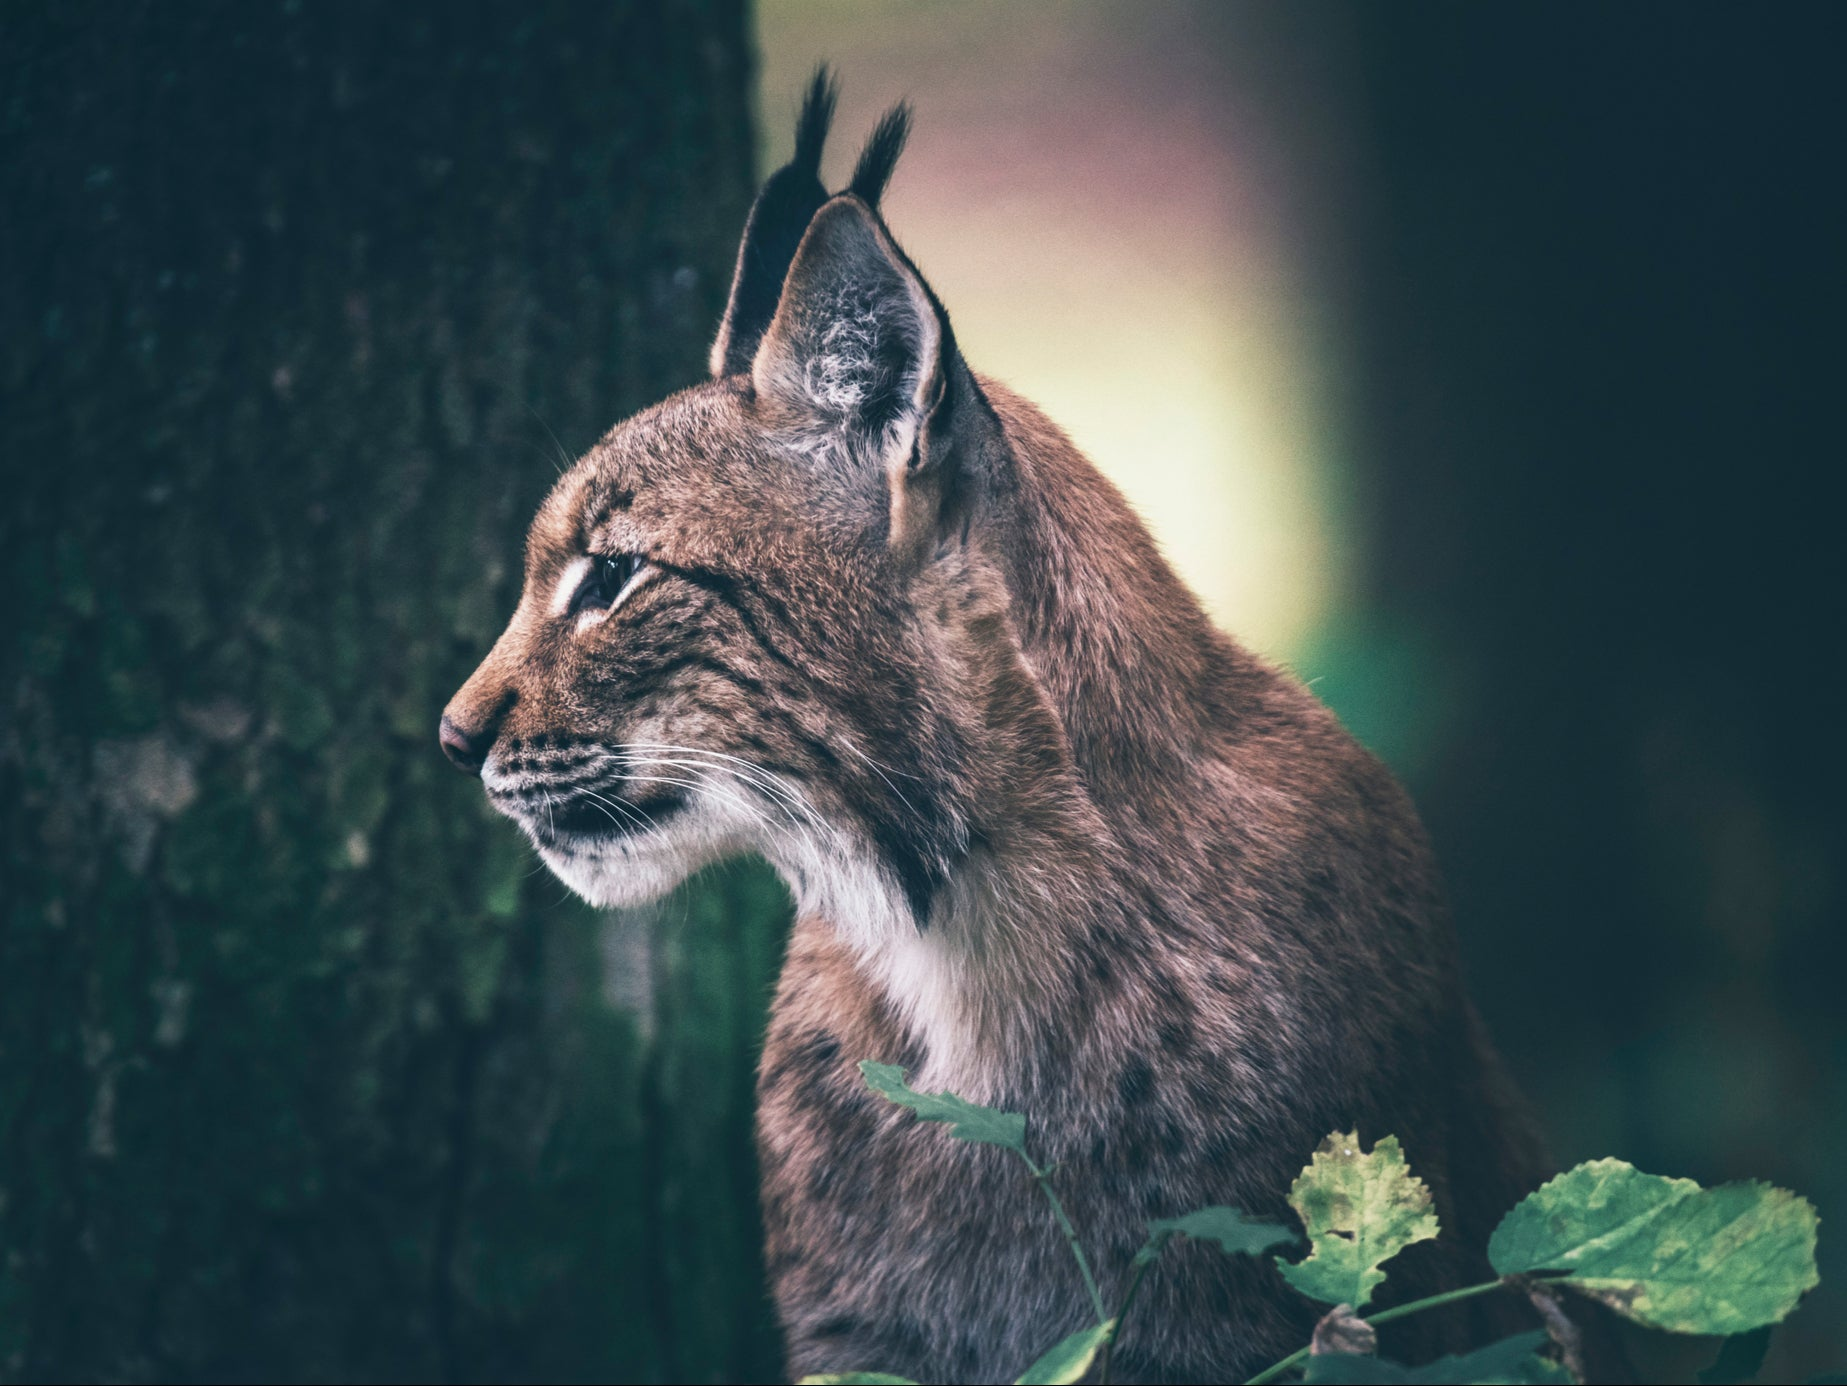 Rewilding: Lynx study aims to reintroduce wild population of cats to Scotland